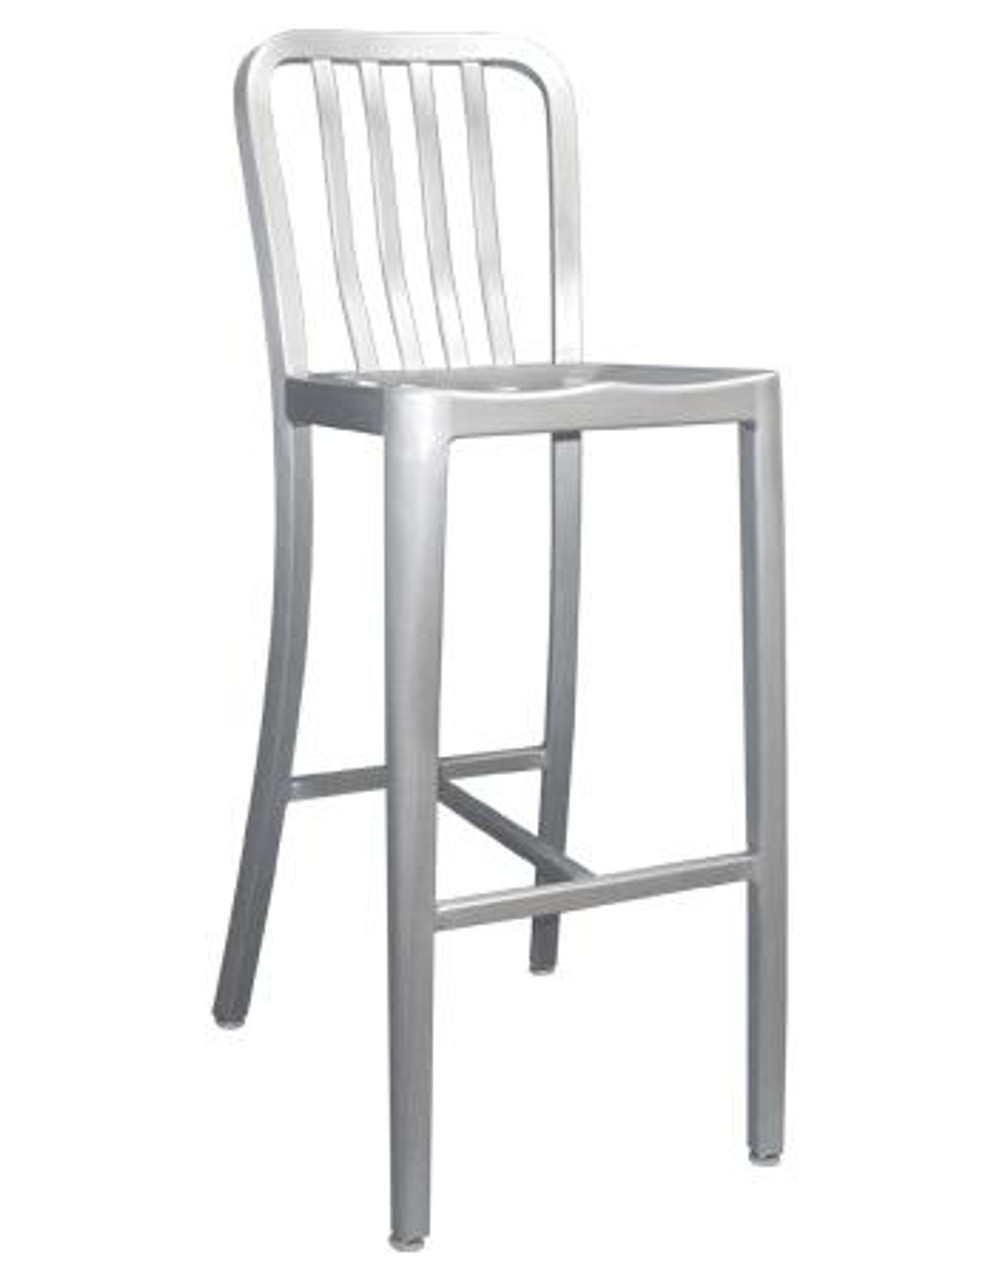 Image of: Outdoor Bar Stools For Sale Aluminum Patio Bar Stools